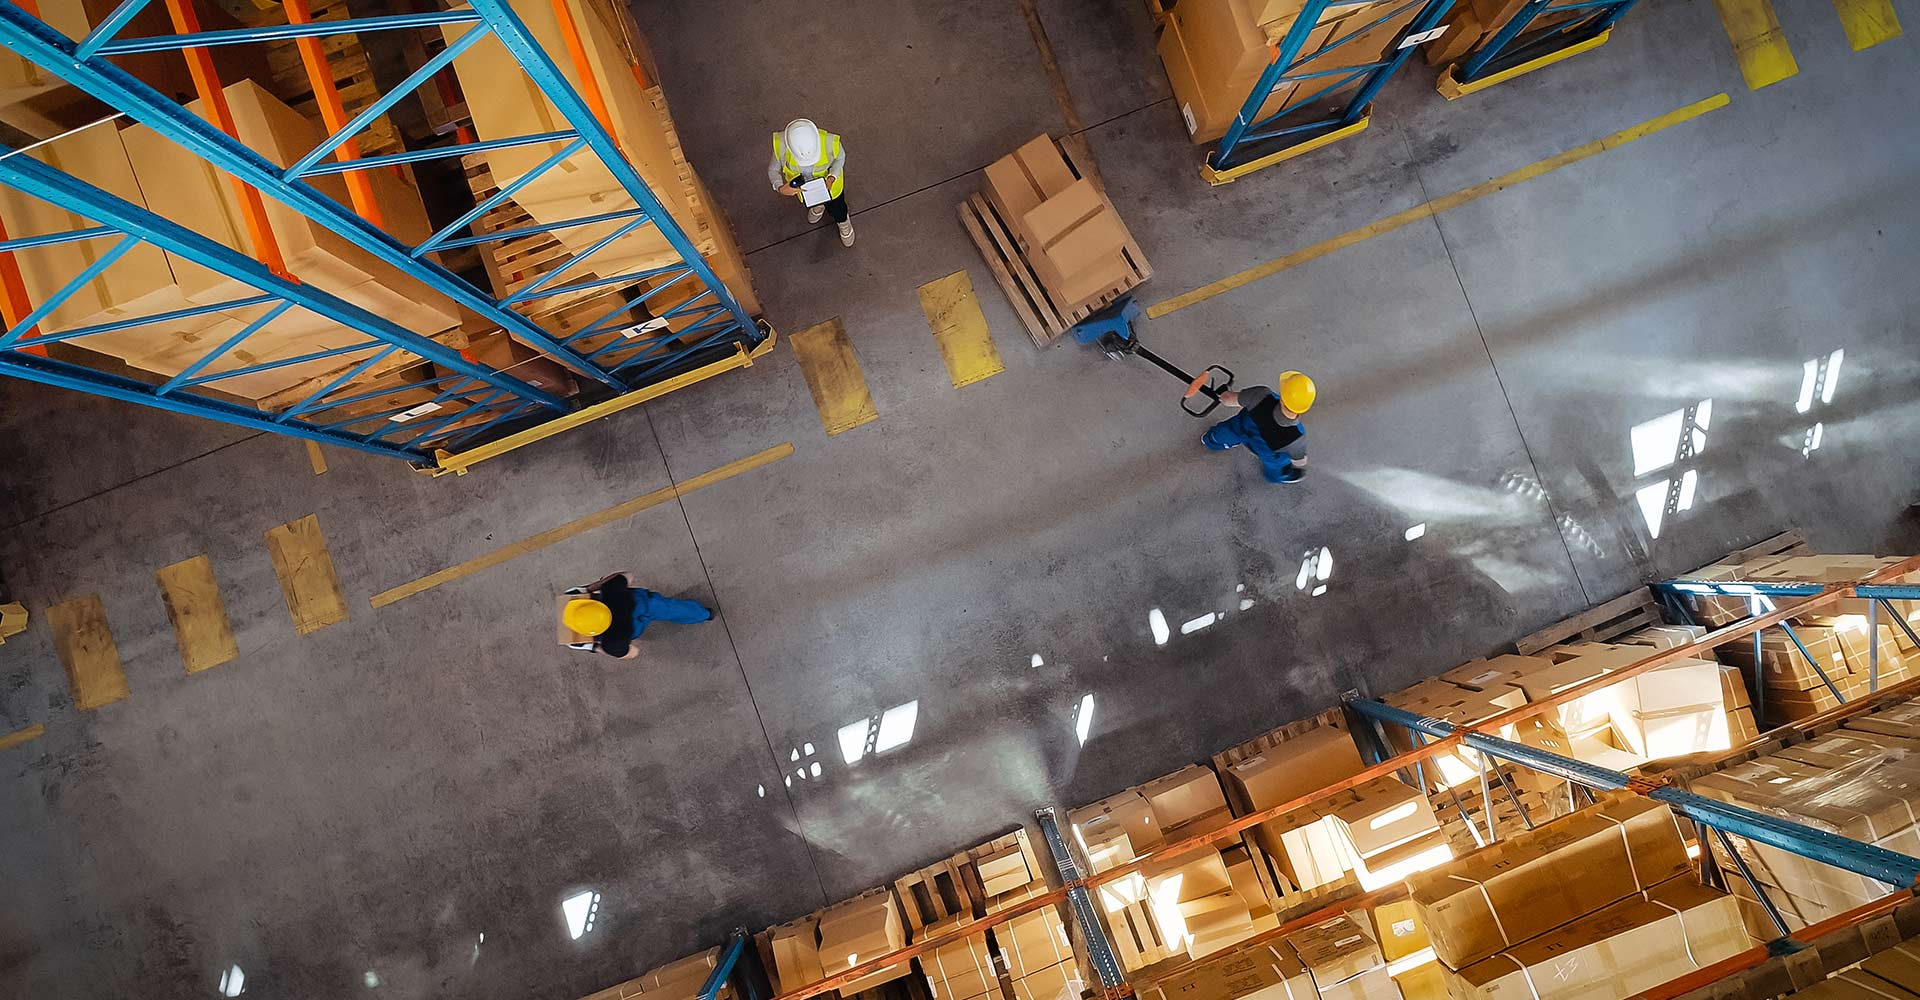 Warehouse workers from bird's eye view.